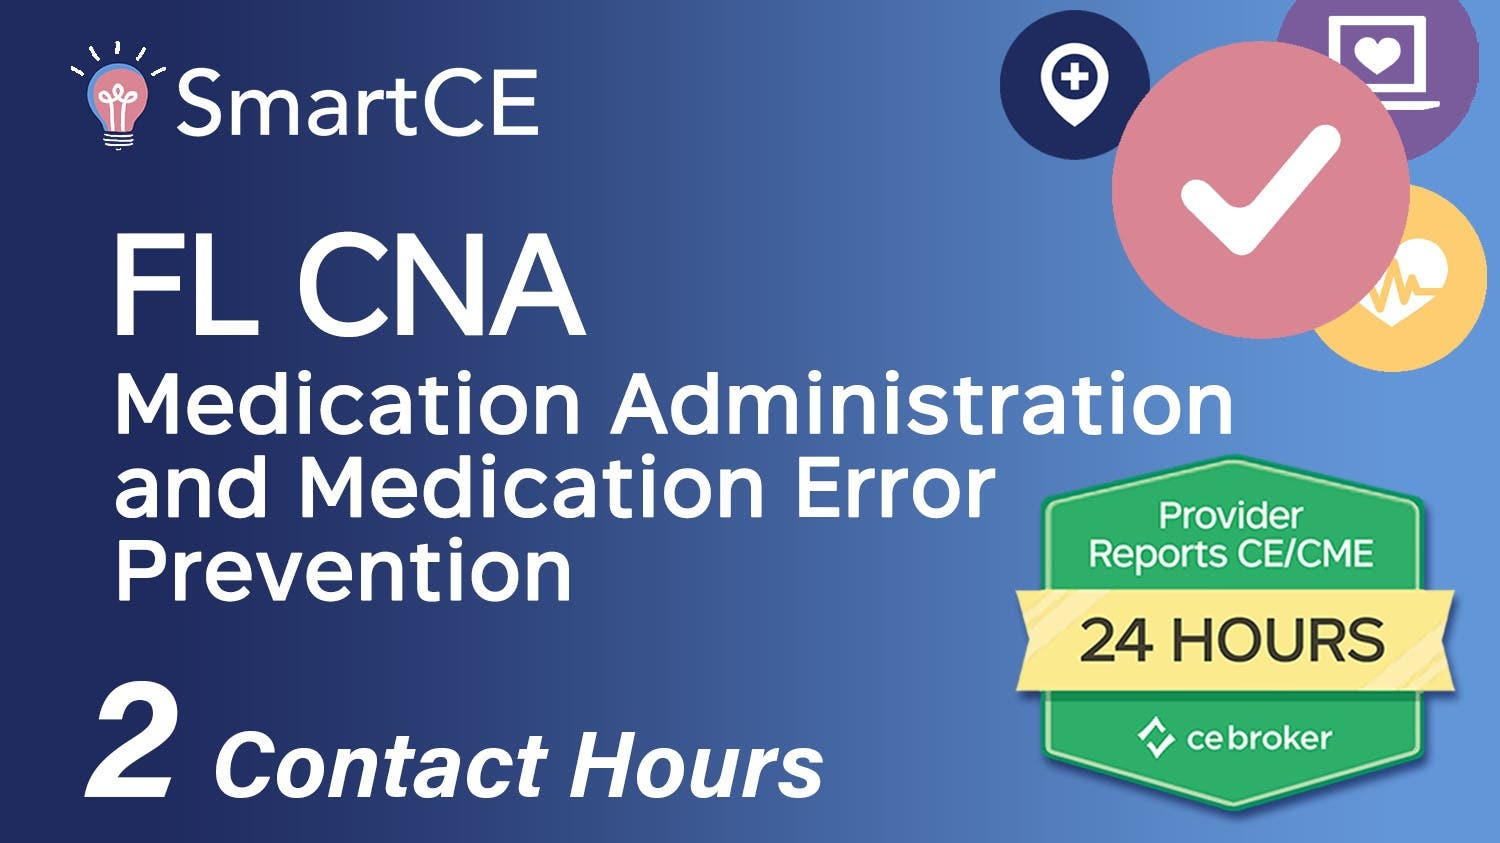 .Medication Administration and Medication Error Prevention for FL CNA's - 2 Contact Hours /20-715933